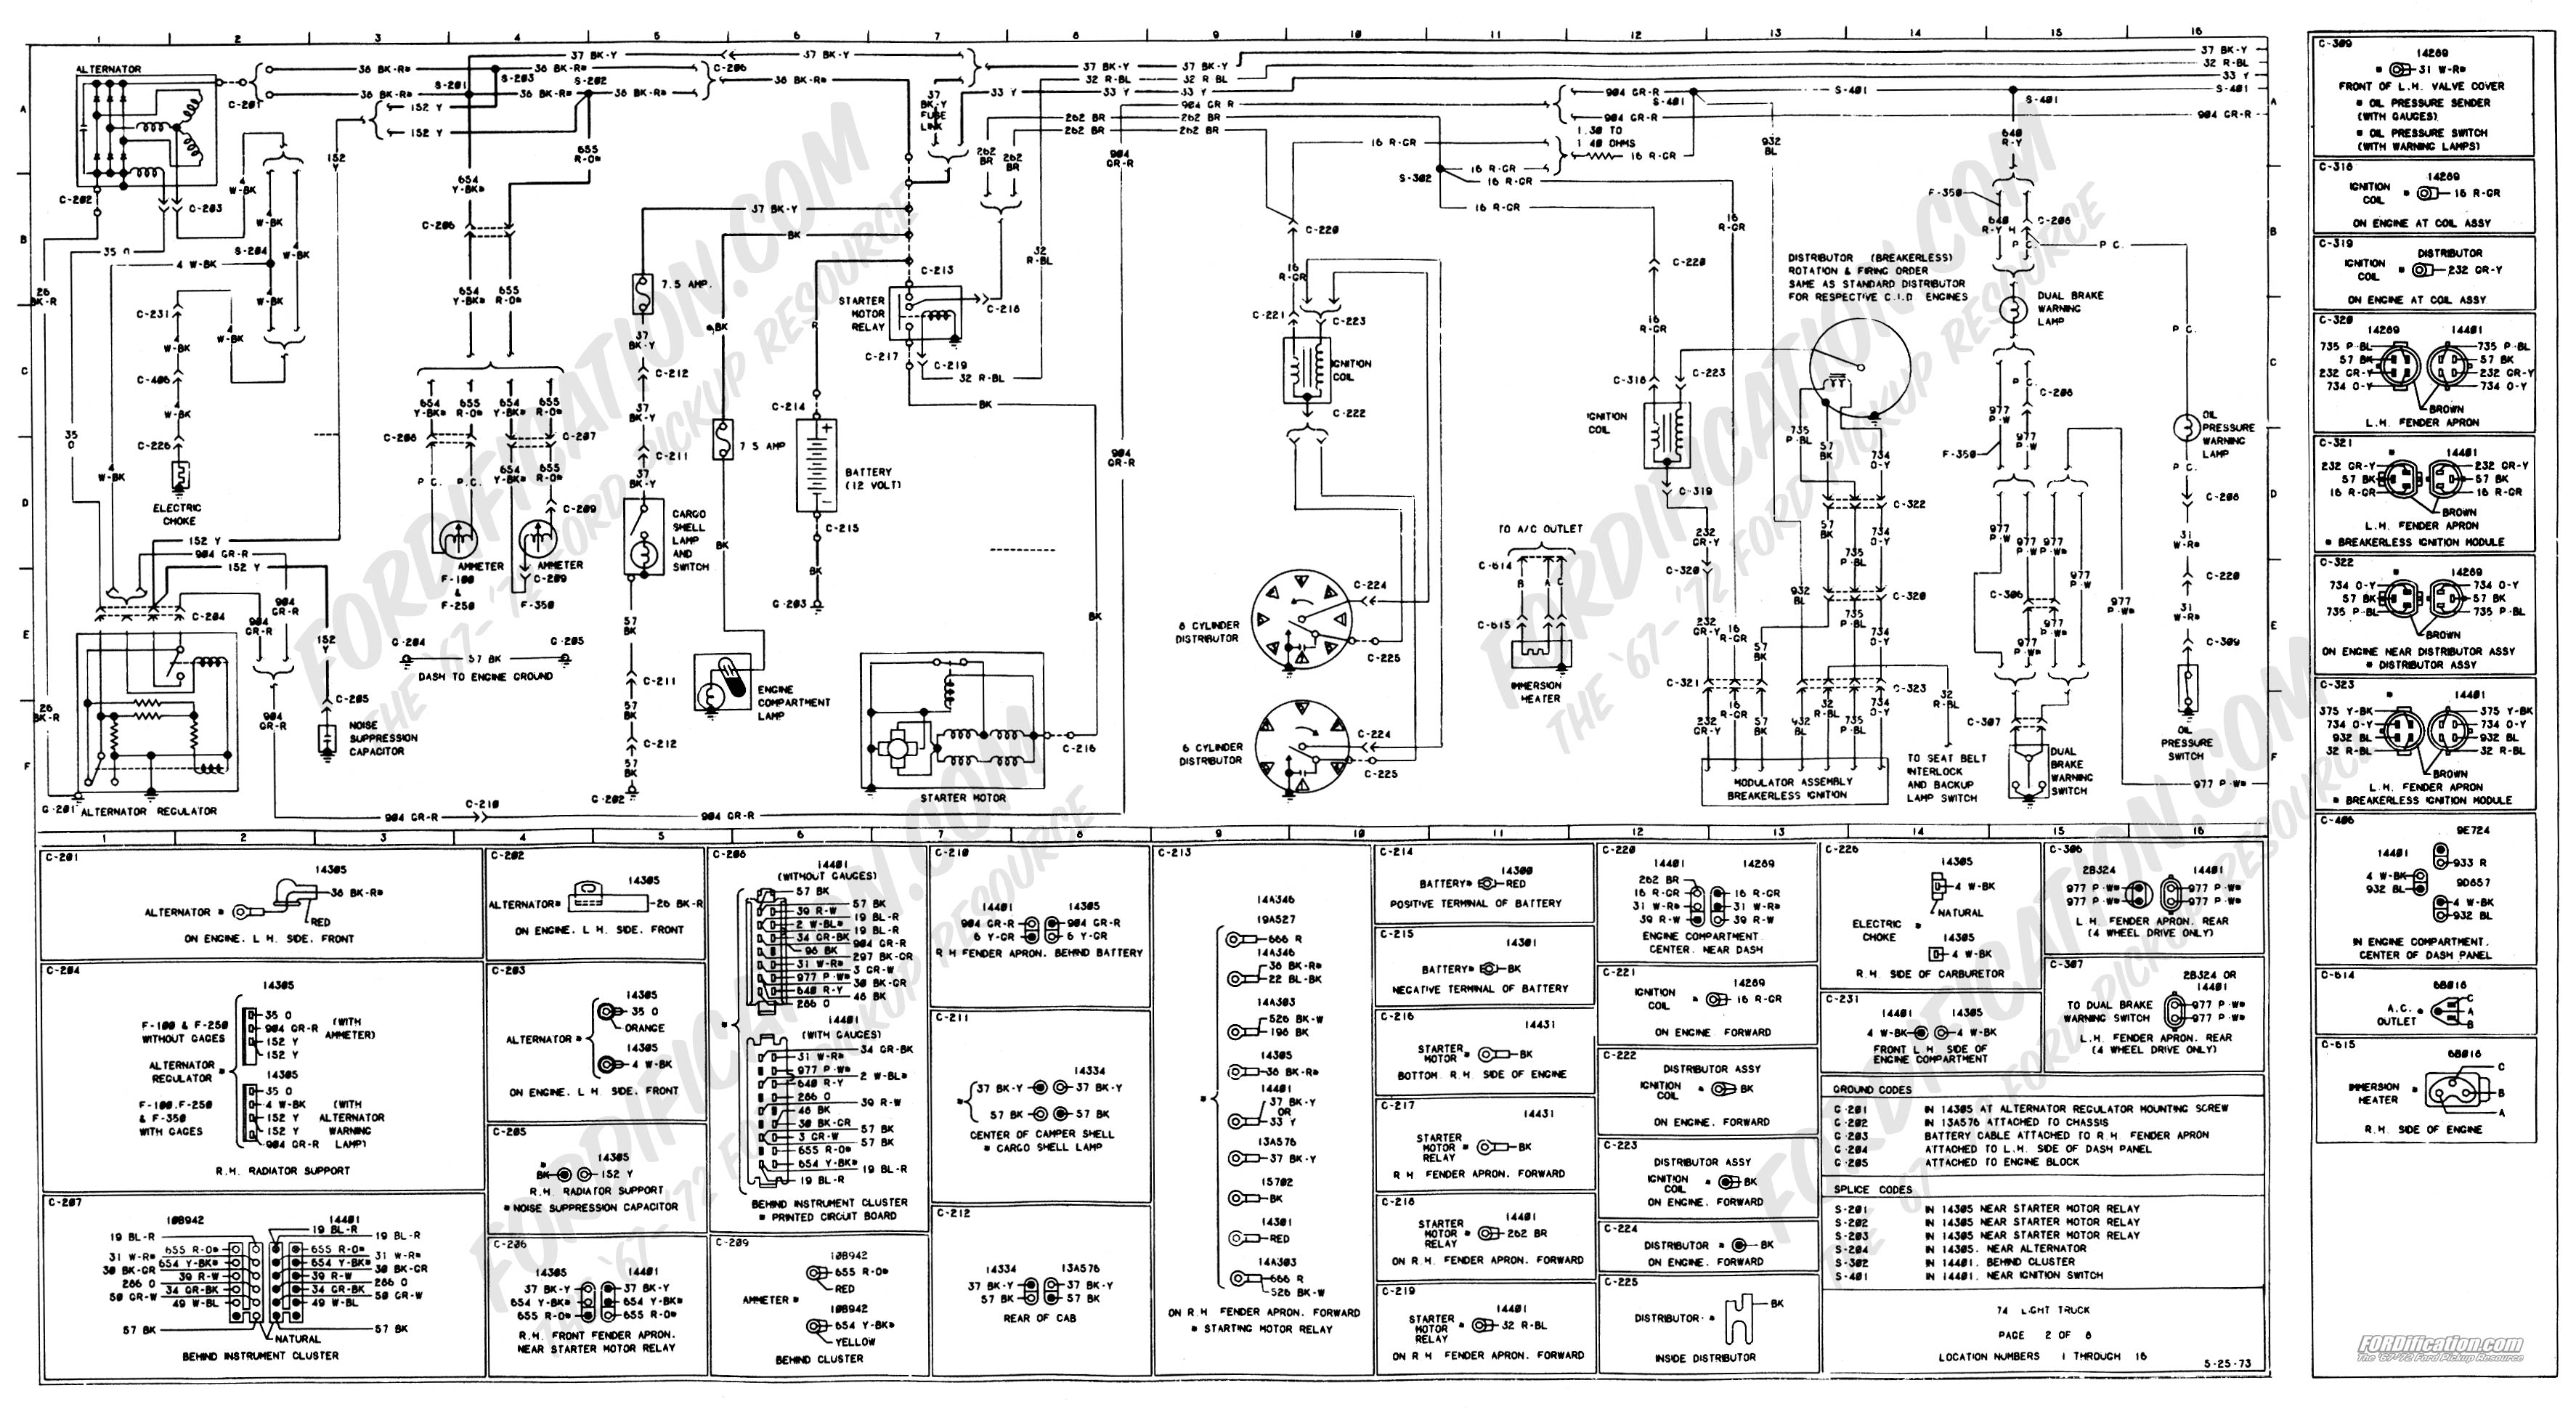 1973 1979 ford truck wiring diagrams schematics fordification net rh fordification net 1979 ford f150 ignition wiring diagram 1979 ford f150 ignition wiring diagram